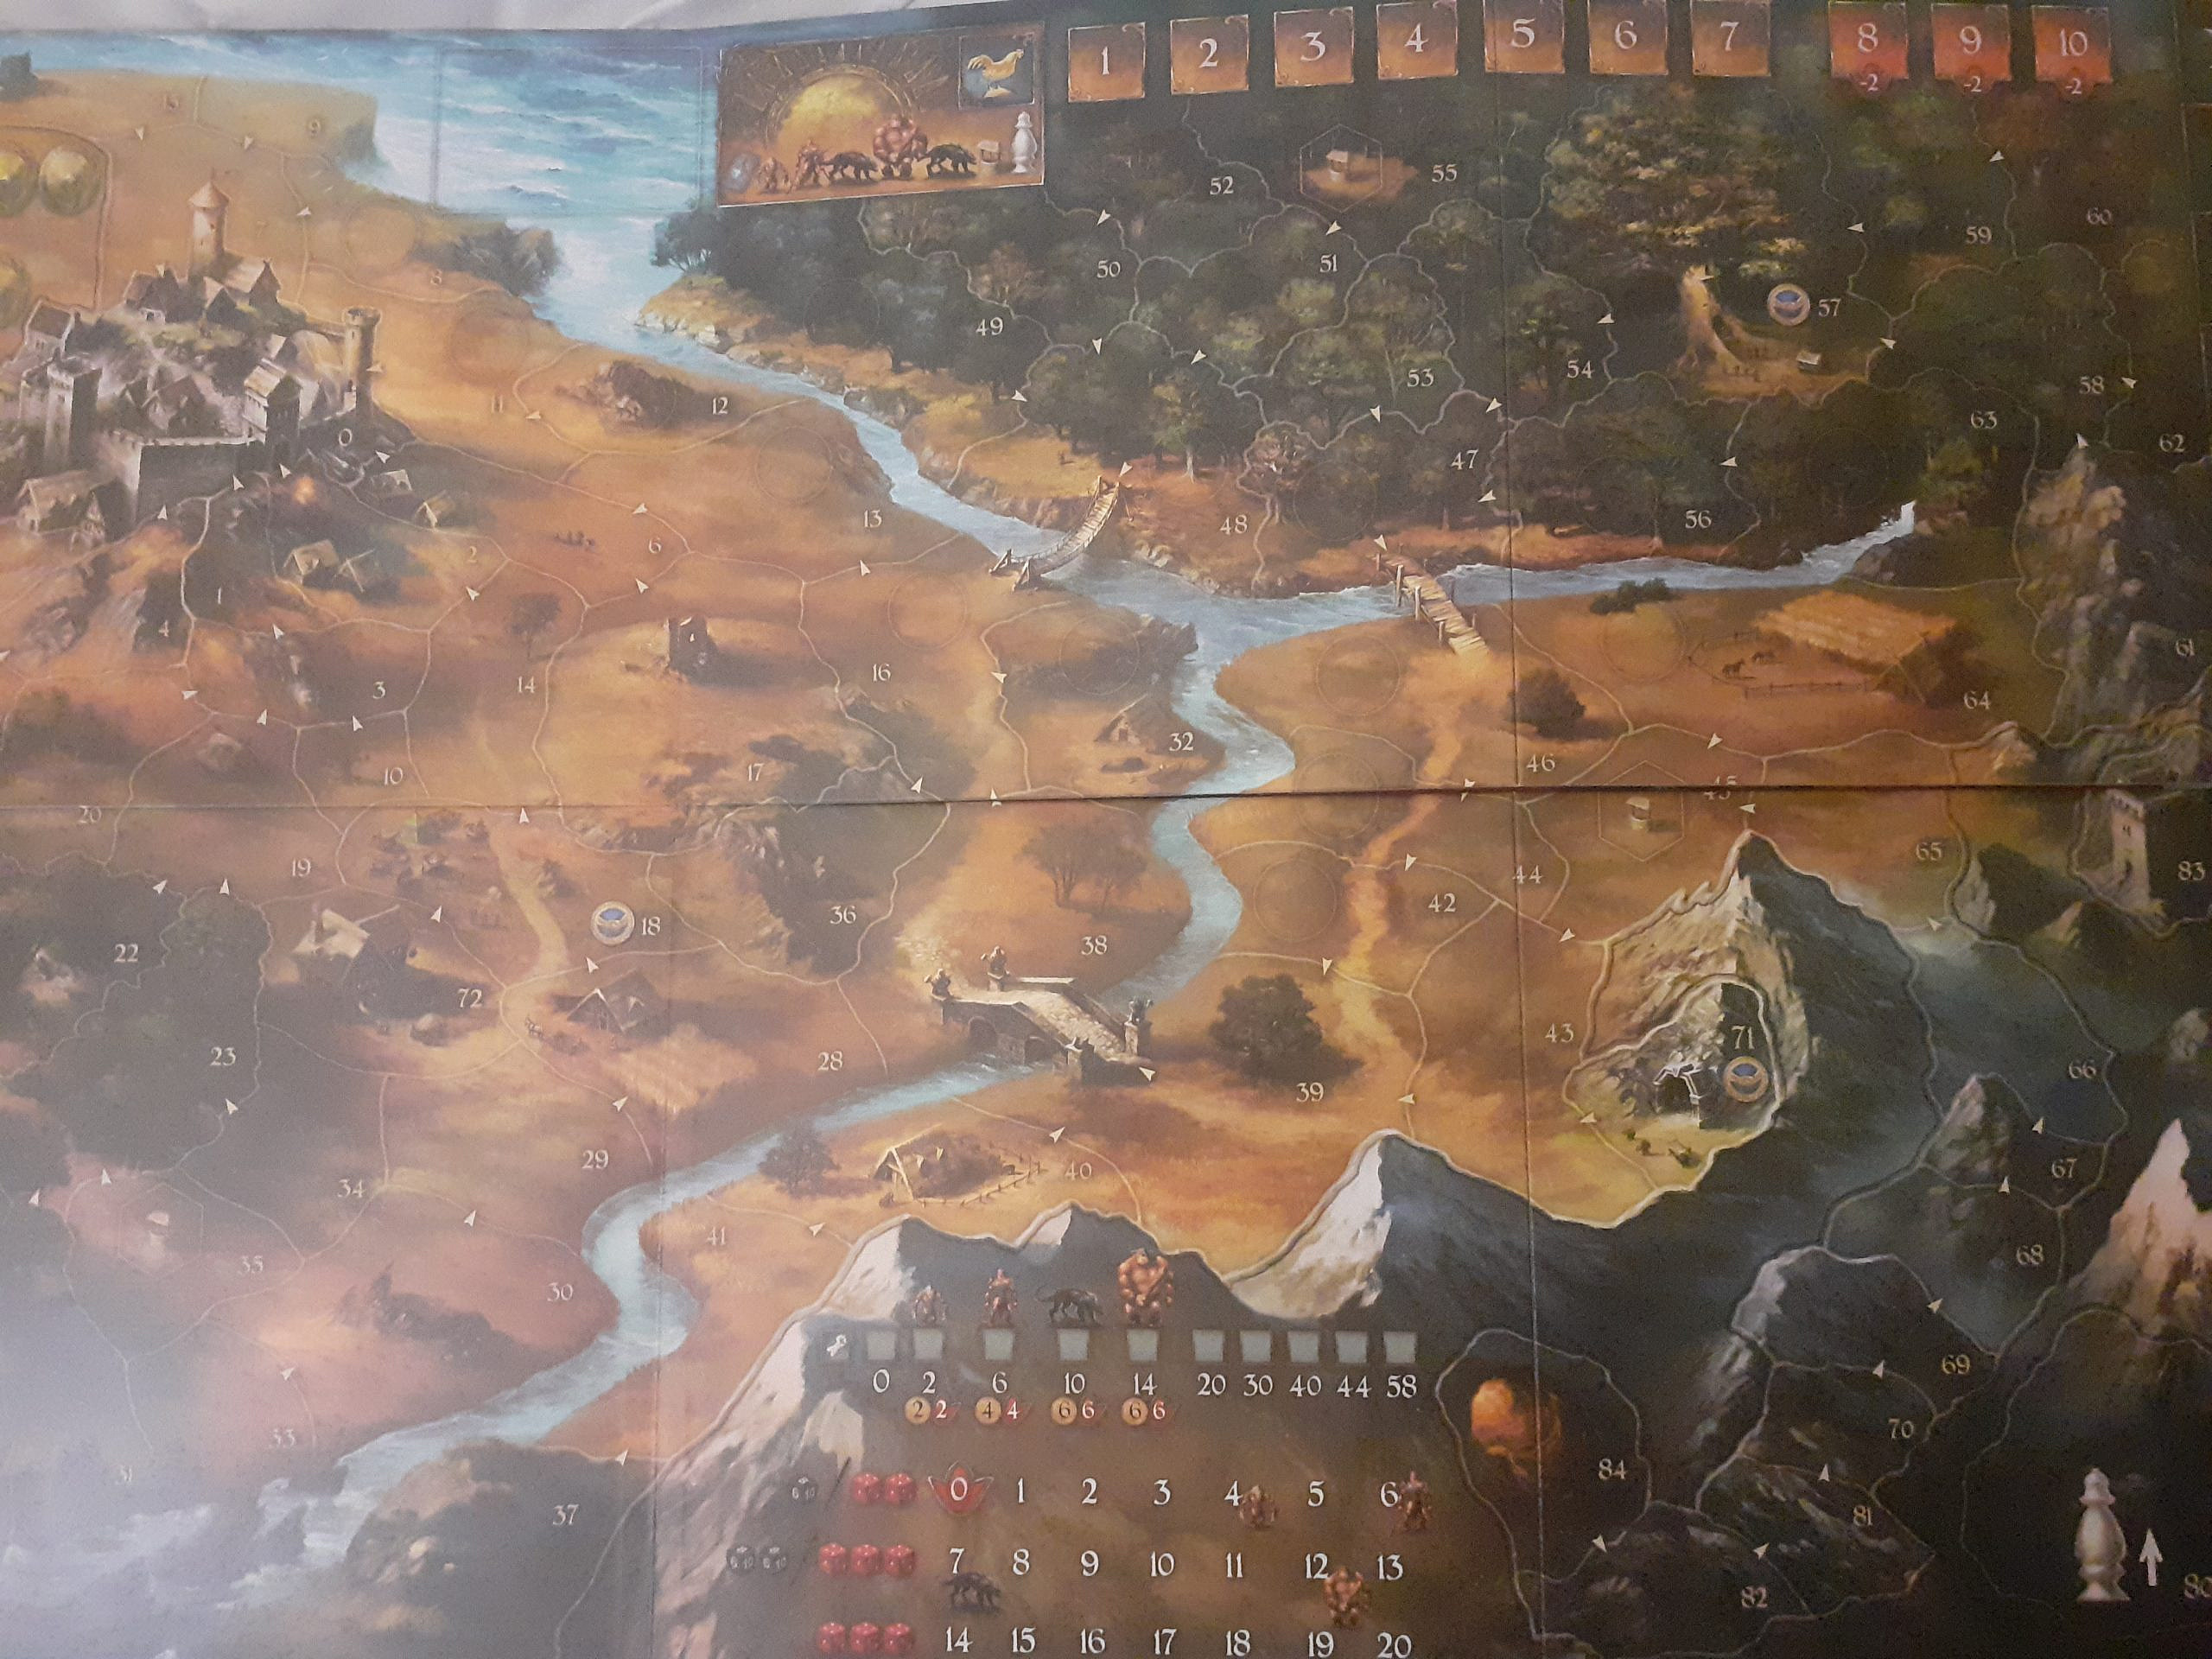 A map in a boardgame called Legends of Andor